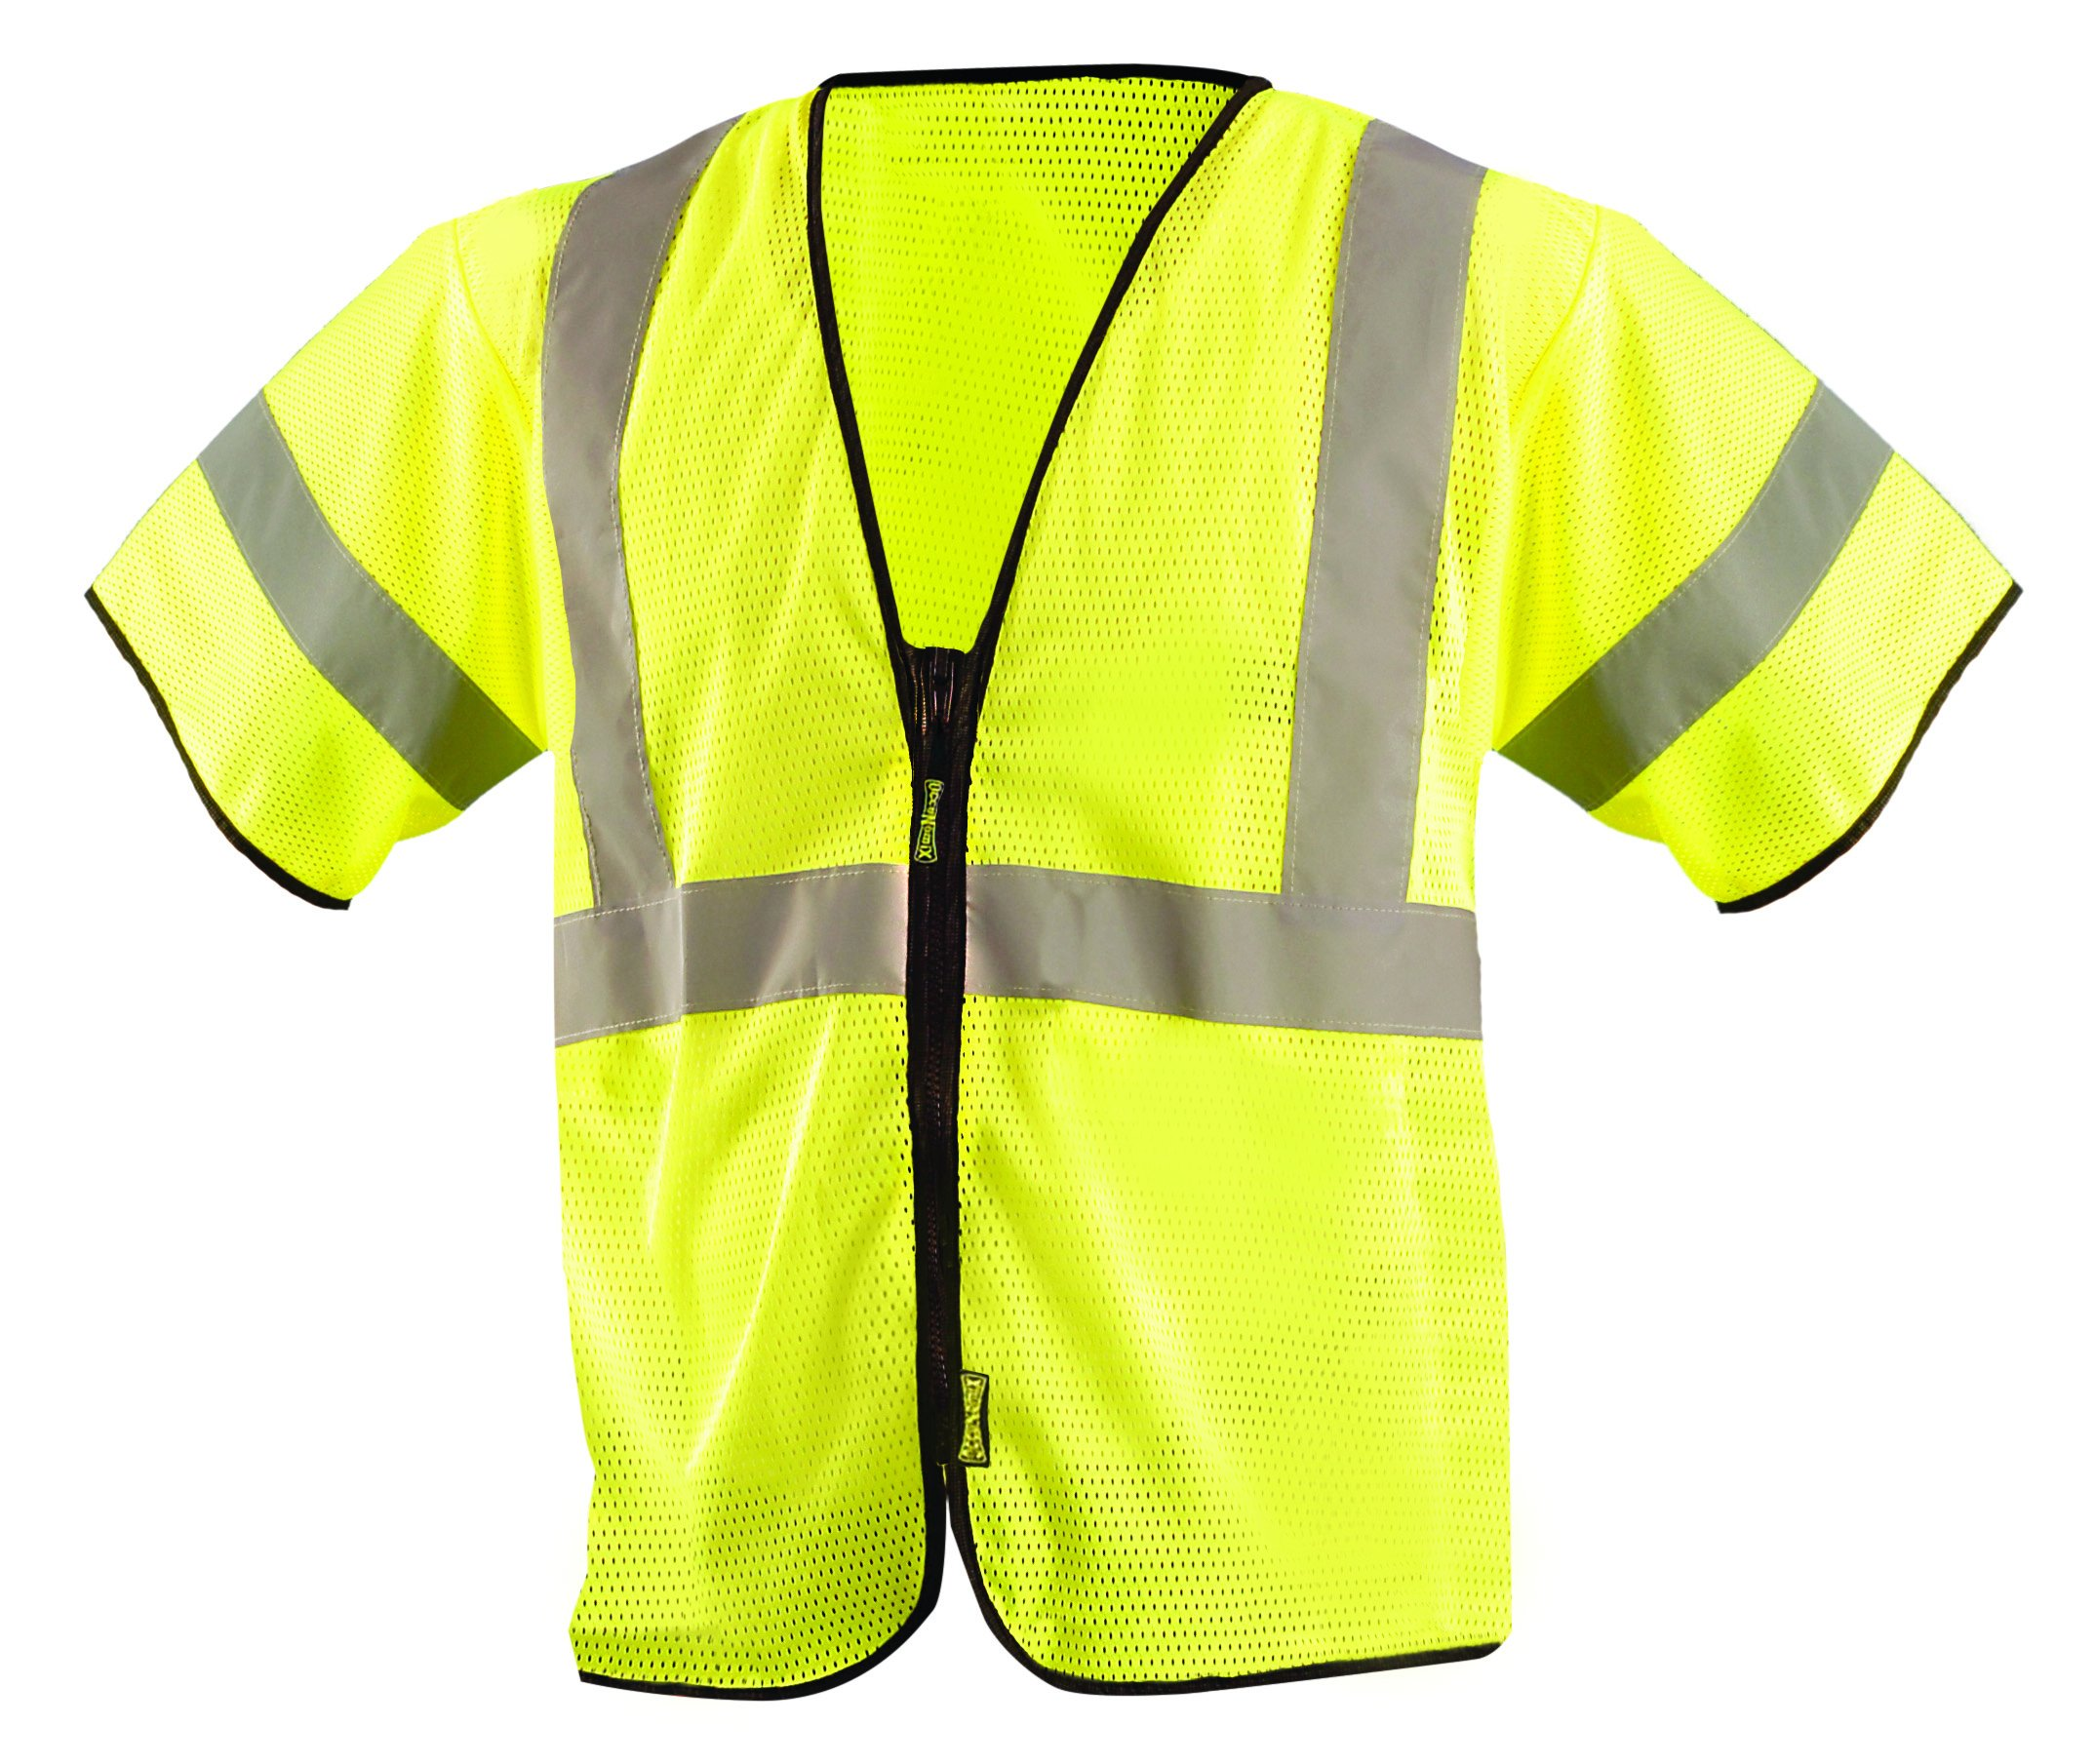 OccuNomix ECO-GCZ3-YS/M Value Mesh Standard Safety Vest, Class 3, ANSI Type R, Yellow, Small/Medium